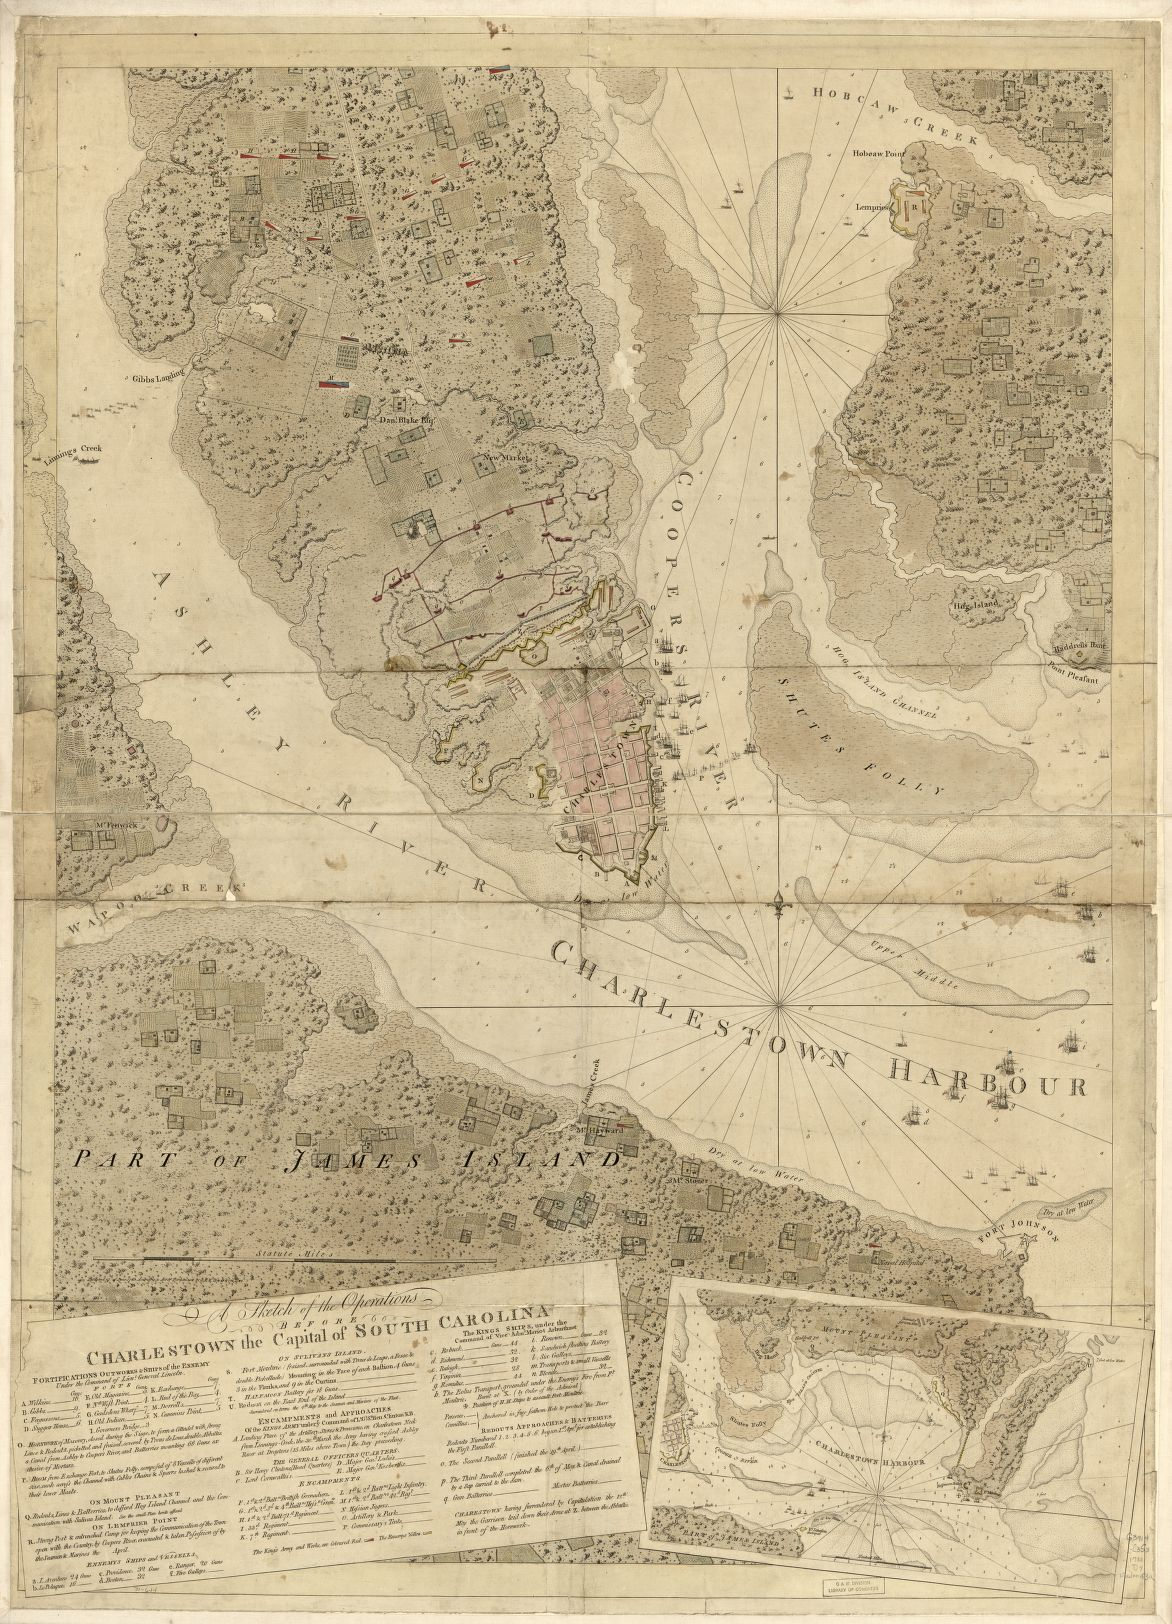 Map of Charleston showing American and British positions, by Joseph F. W. Des Barres, 1780. Call number G3914.C3S3 1780 .D4. Courtesy of the Library of Congress.